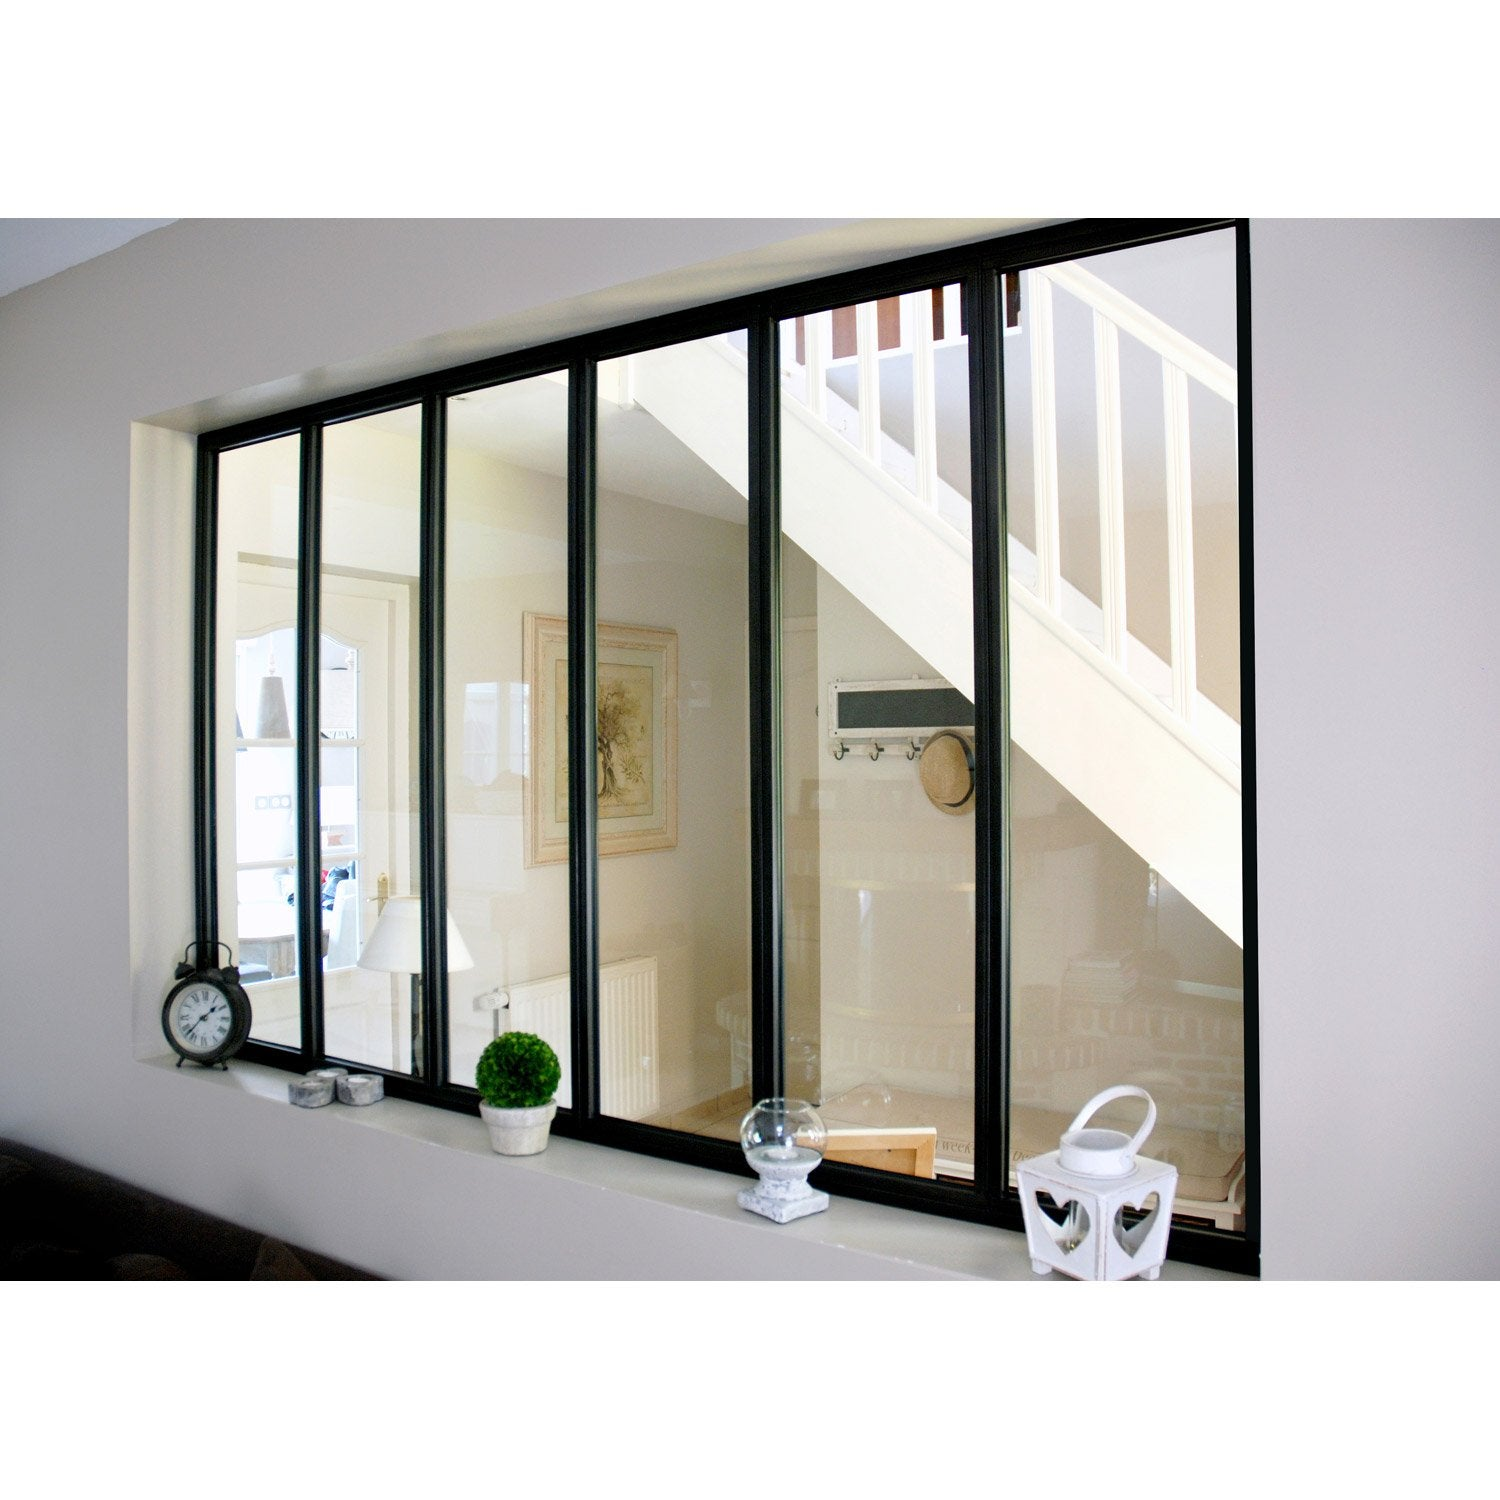 Verri re atelier en kit aluminium noir vitrage non fourni for Cloison transparente coulissante